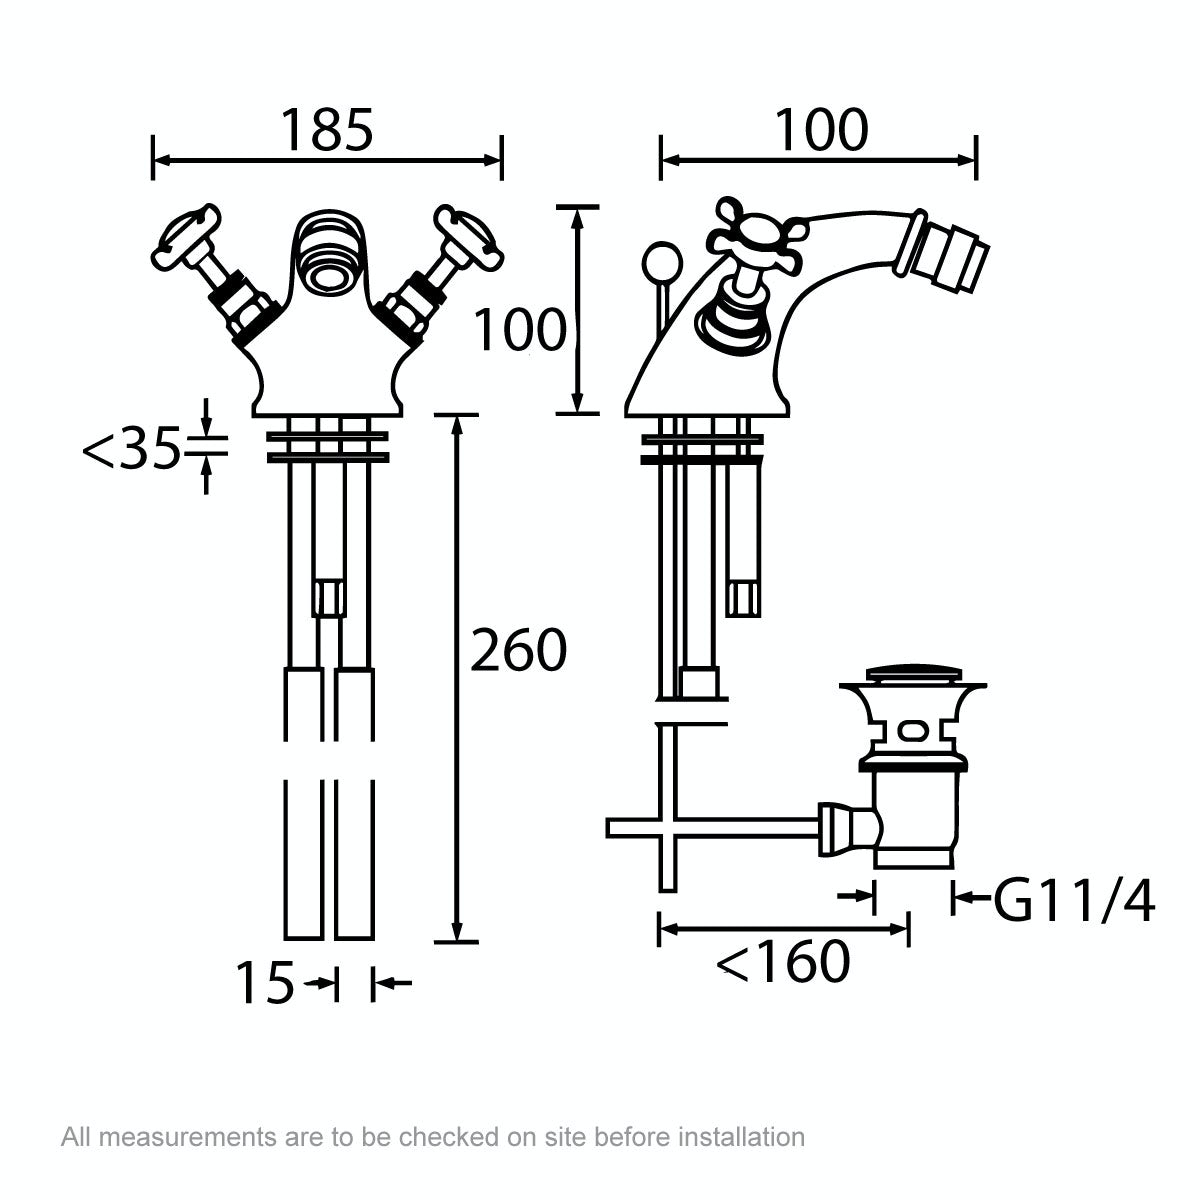 Dimensions for Bristan 1901 gold bidet mixer tap with waste